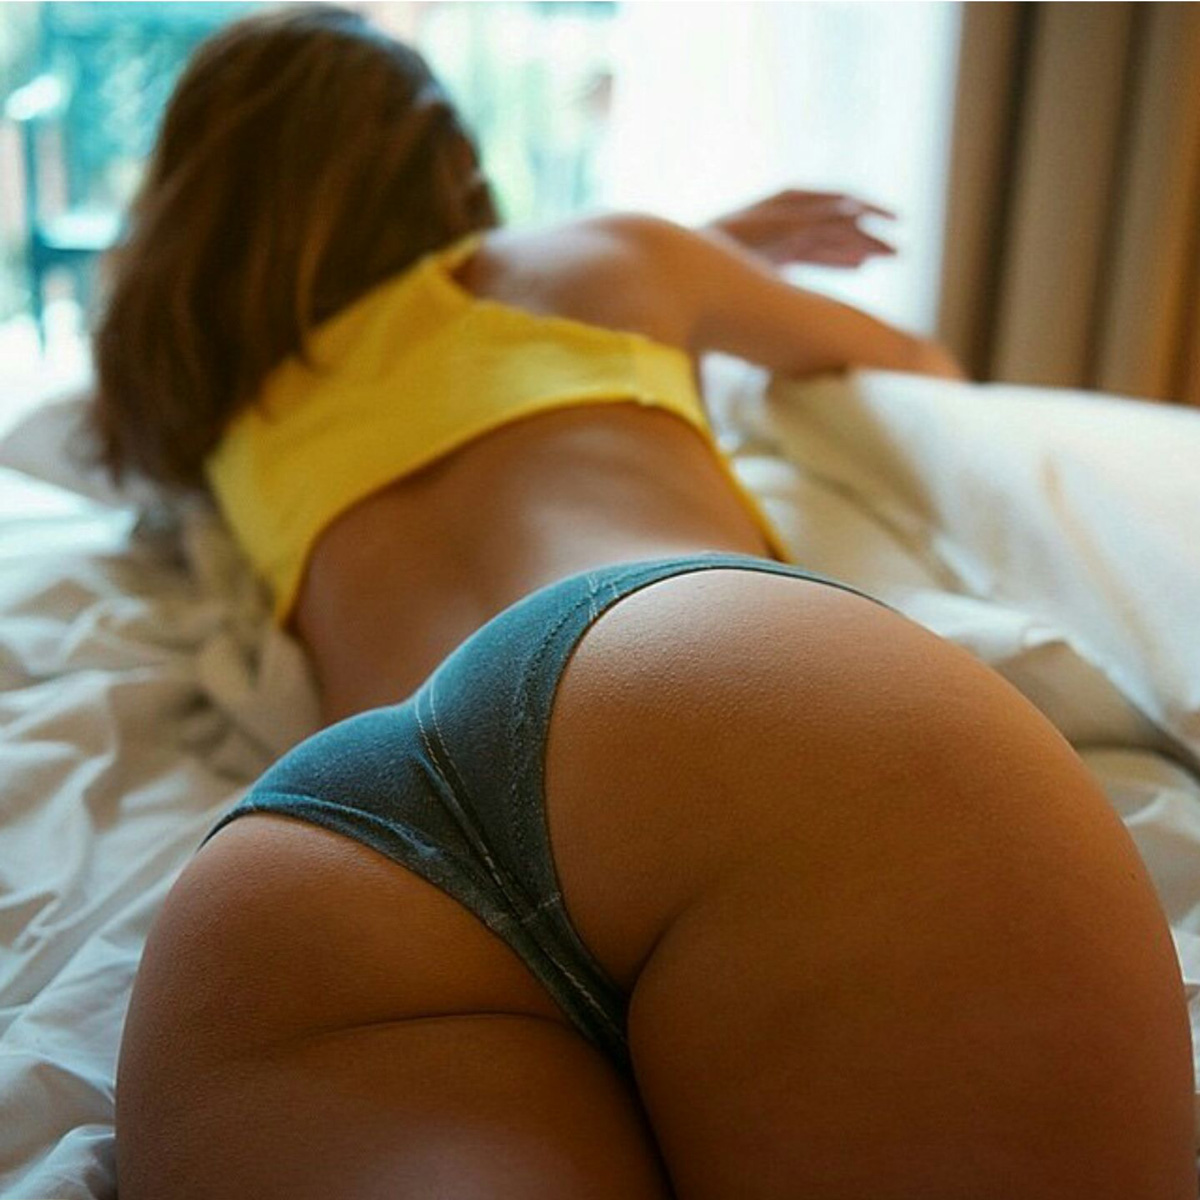 Big Booties In Bed  Part 9-3560